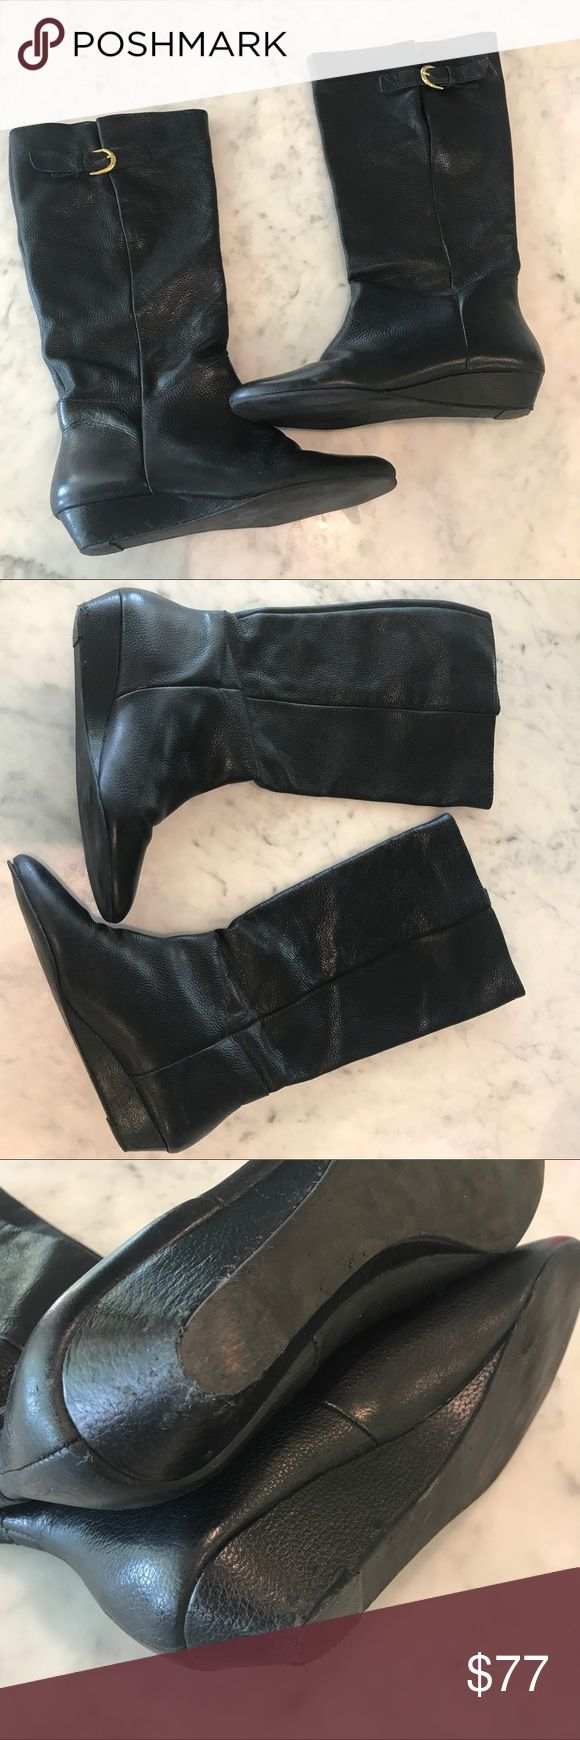 """Steve Madden """"Intyce"""" Boots Great condition. See pics. So comfy. Steve Madden Shoes Heeled Boots"""